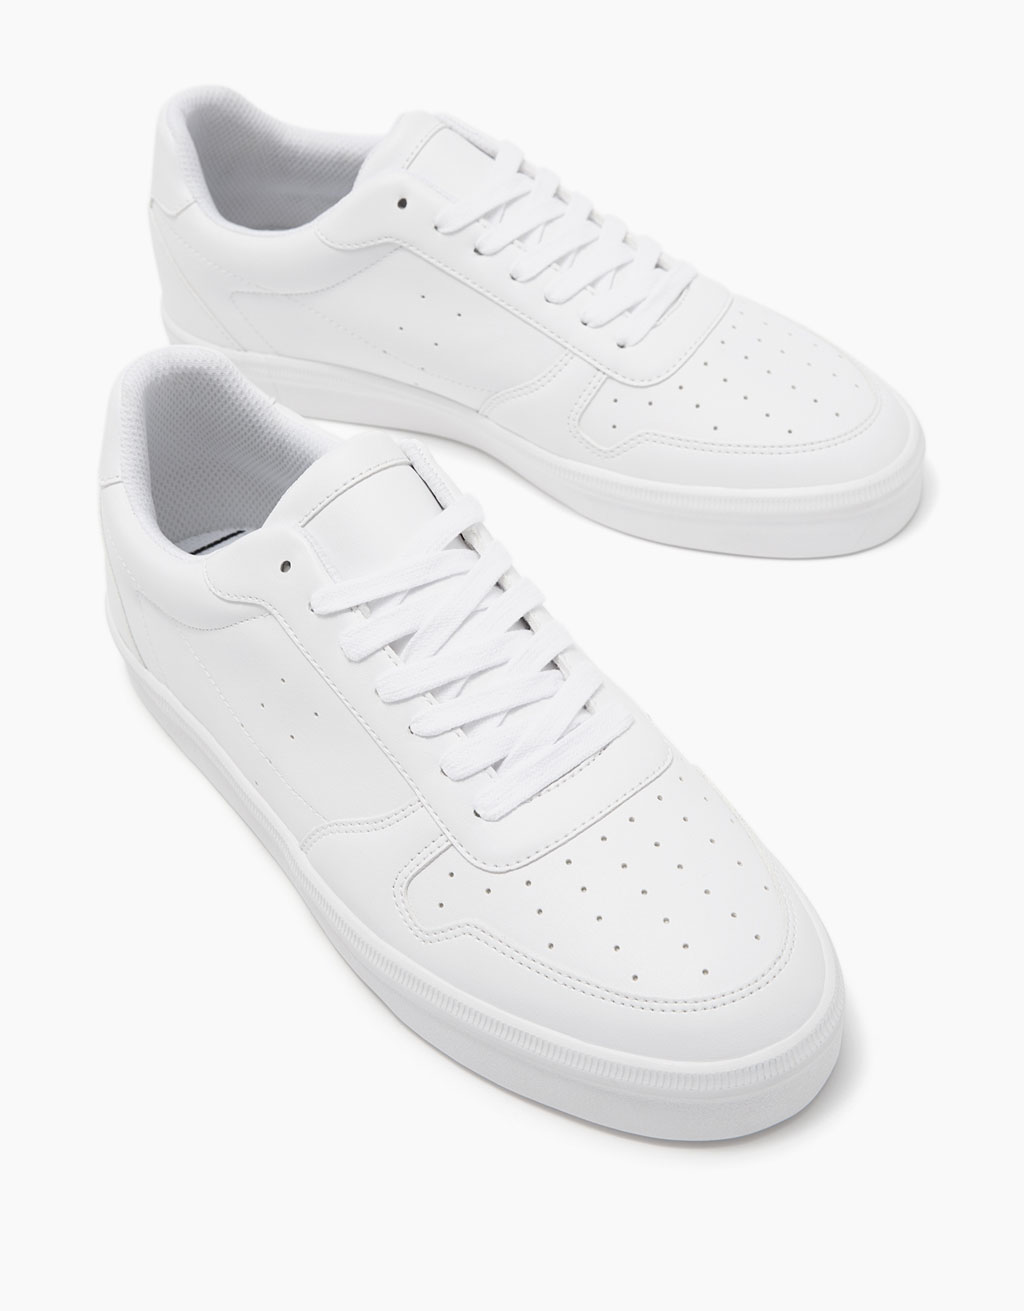 Men's retro topstitched sneakers